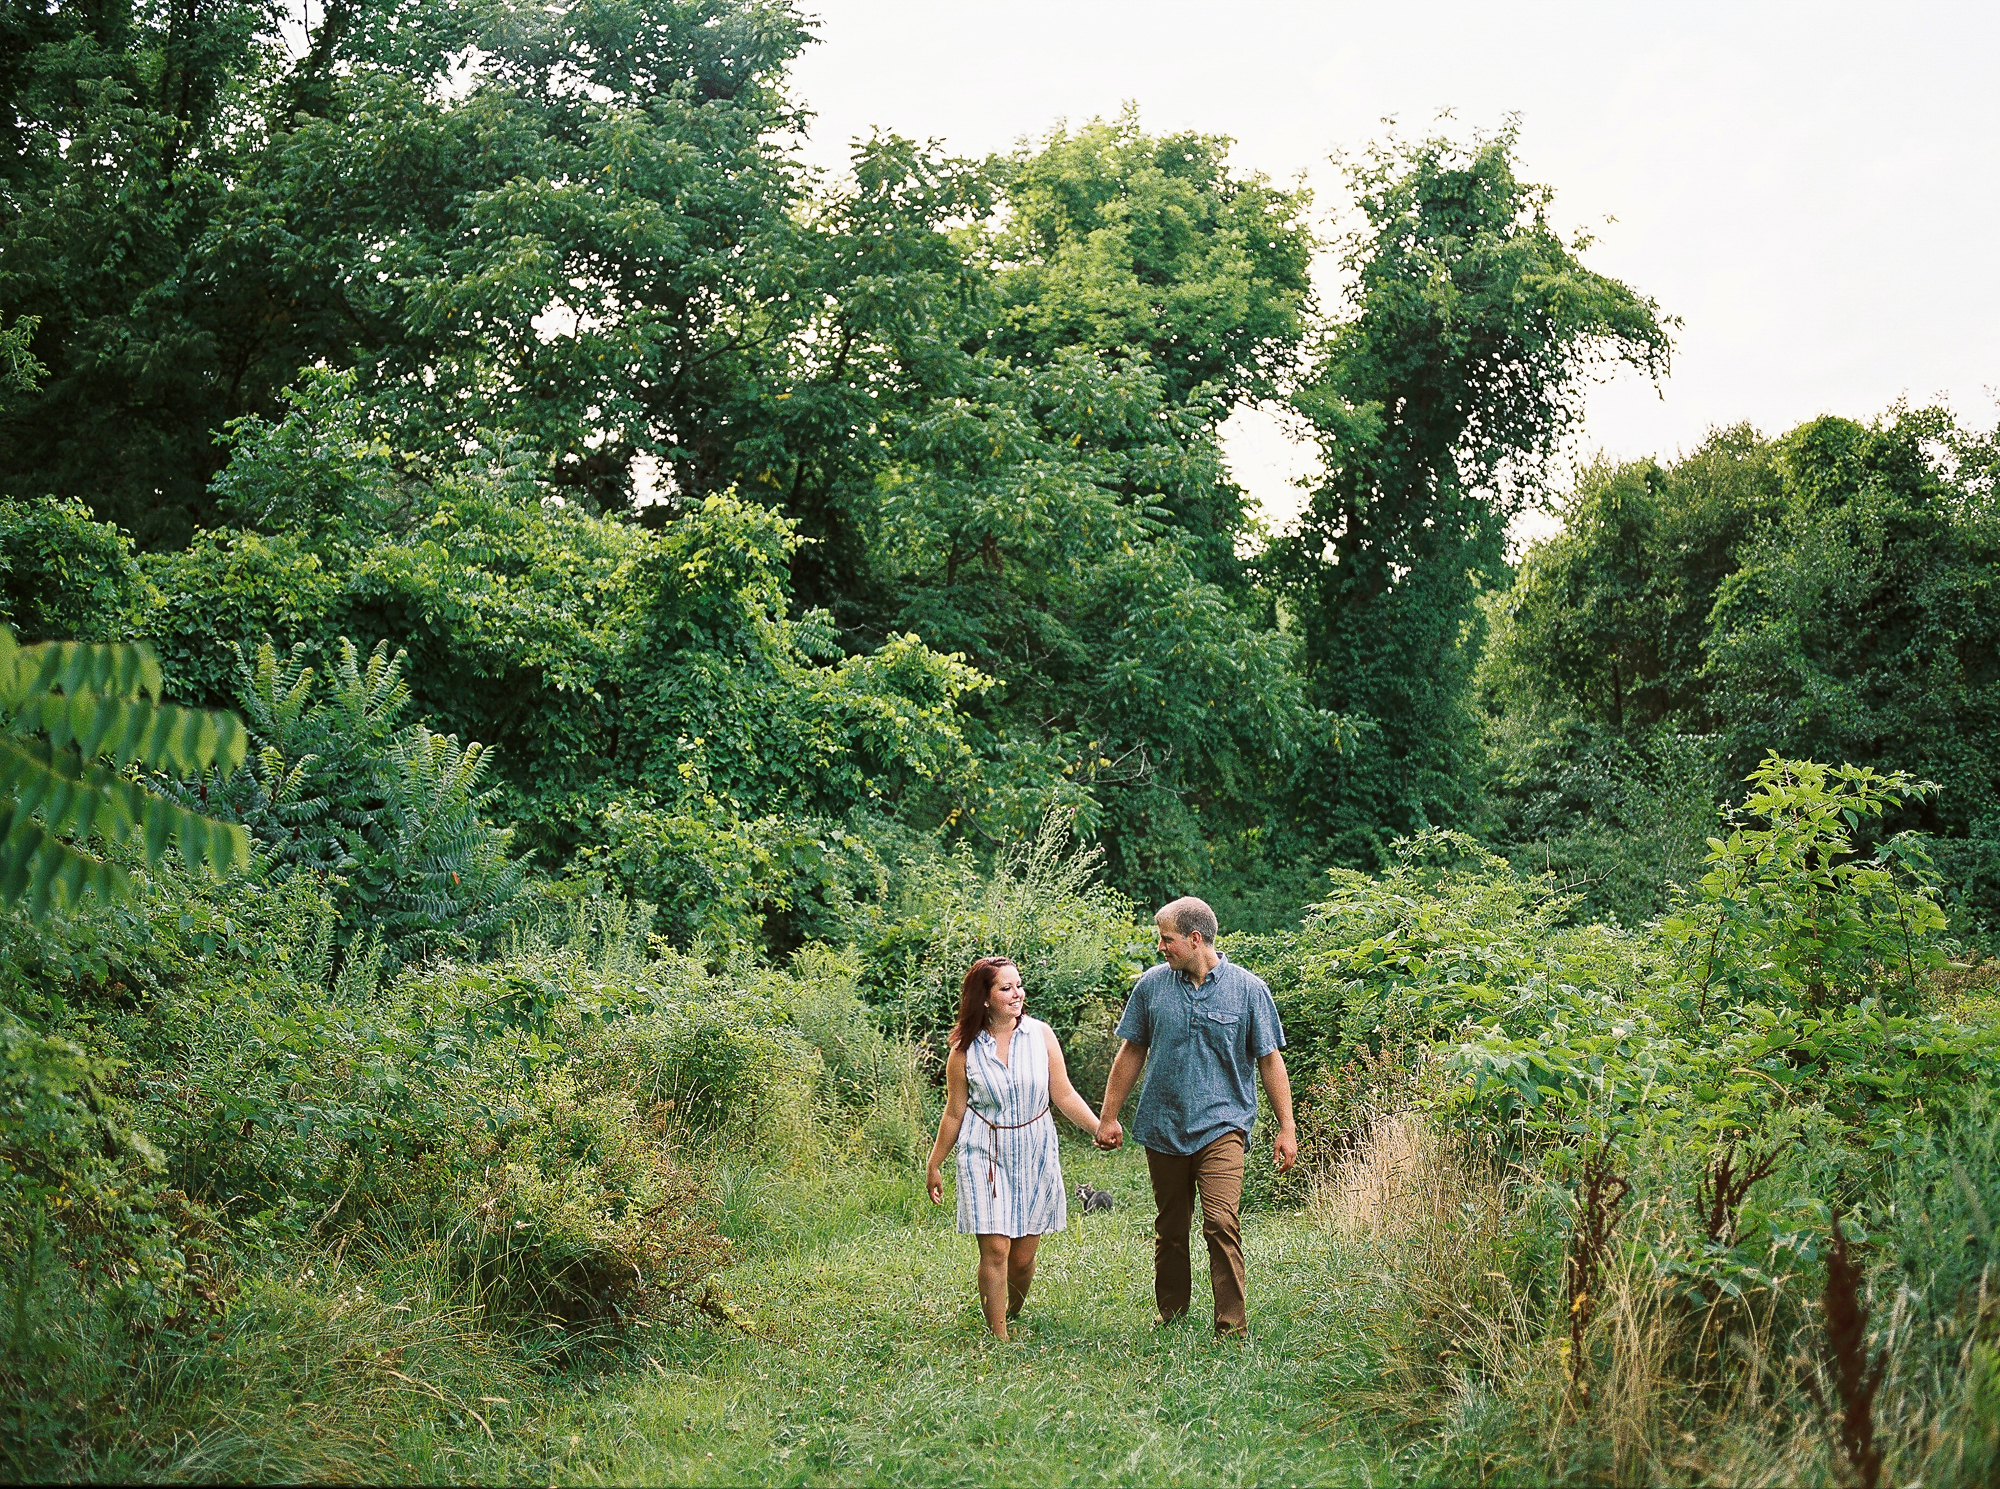 Alexandra-Elise-Photography-Ali-Reed-Film-Farm-Engagement-Session-024